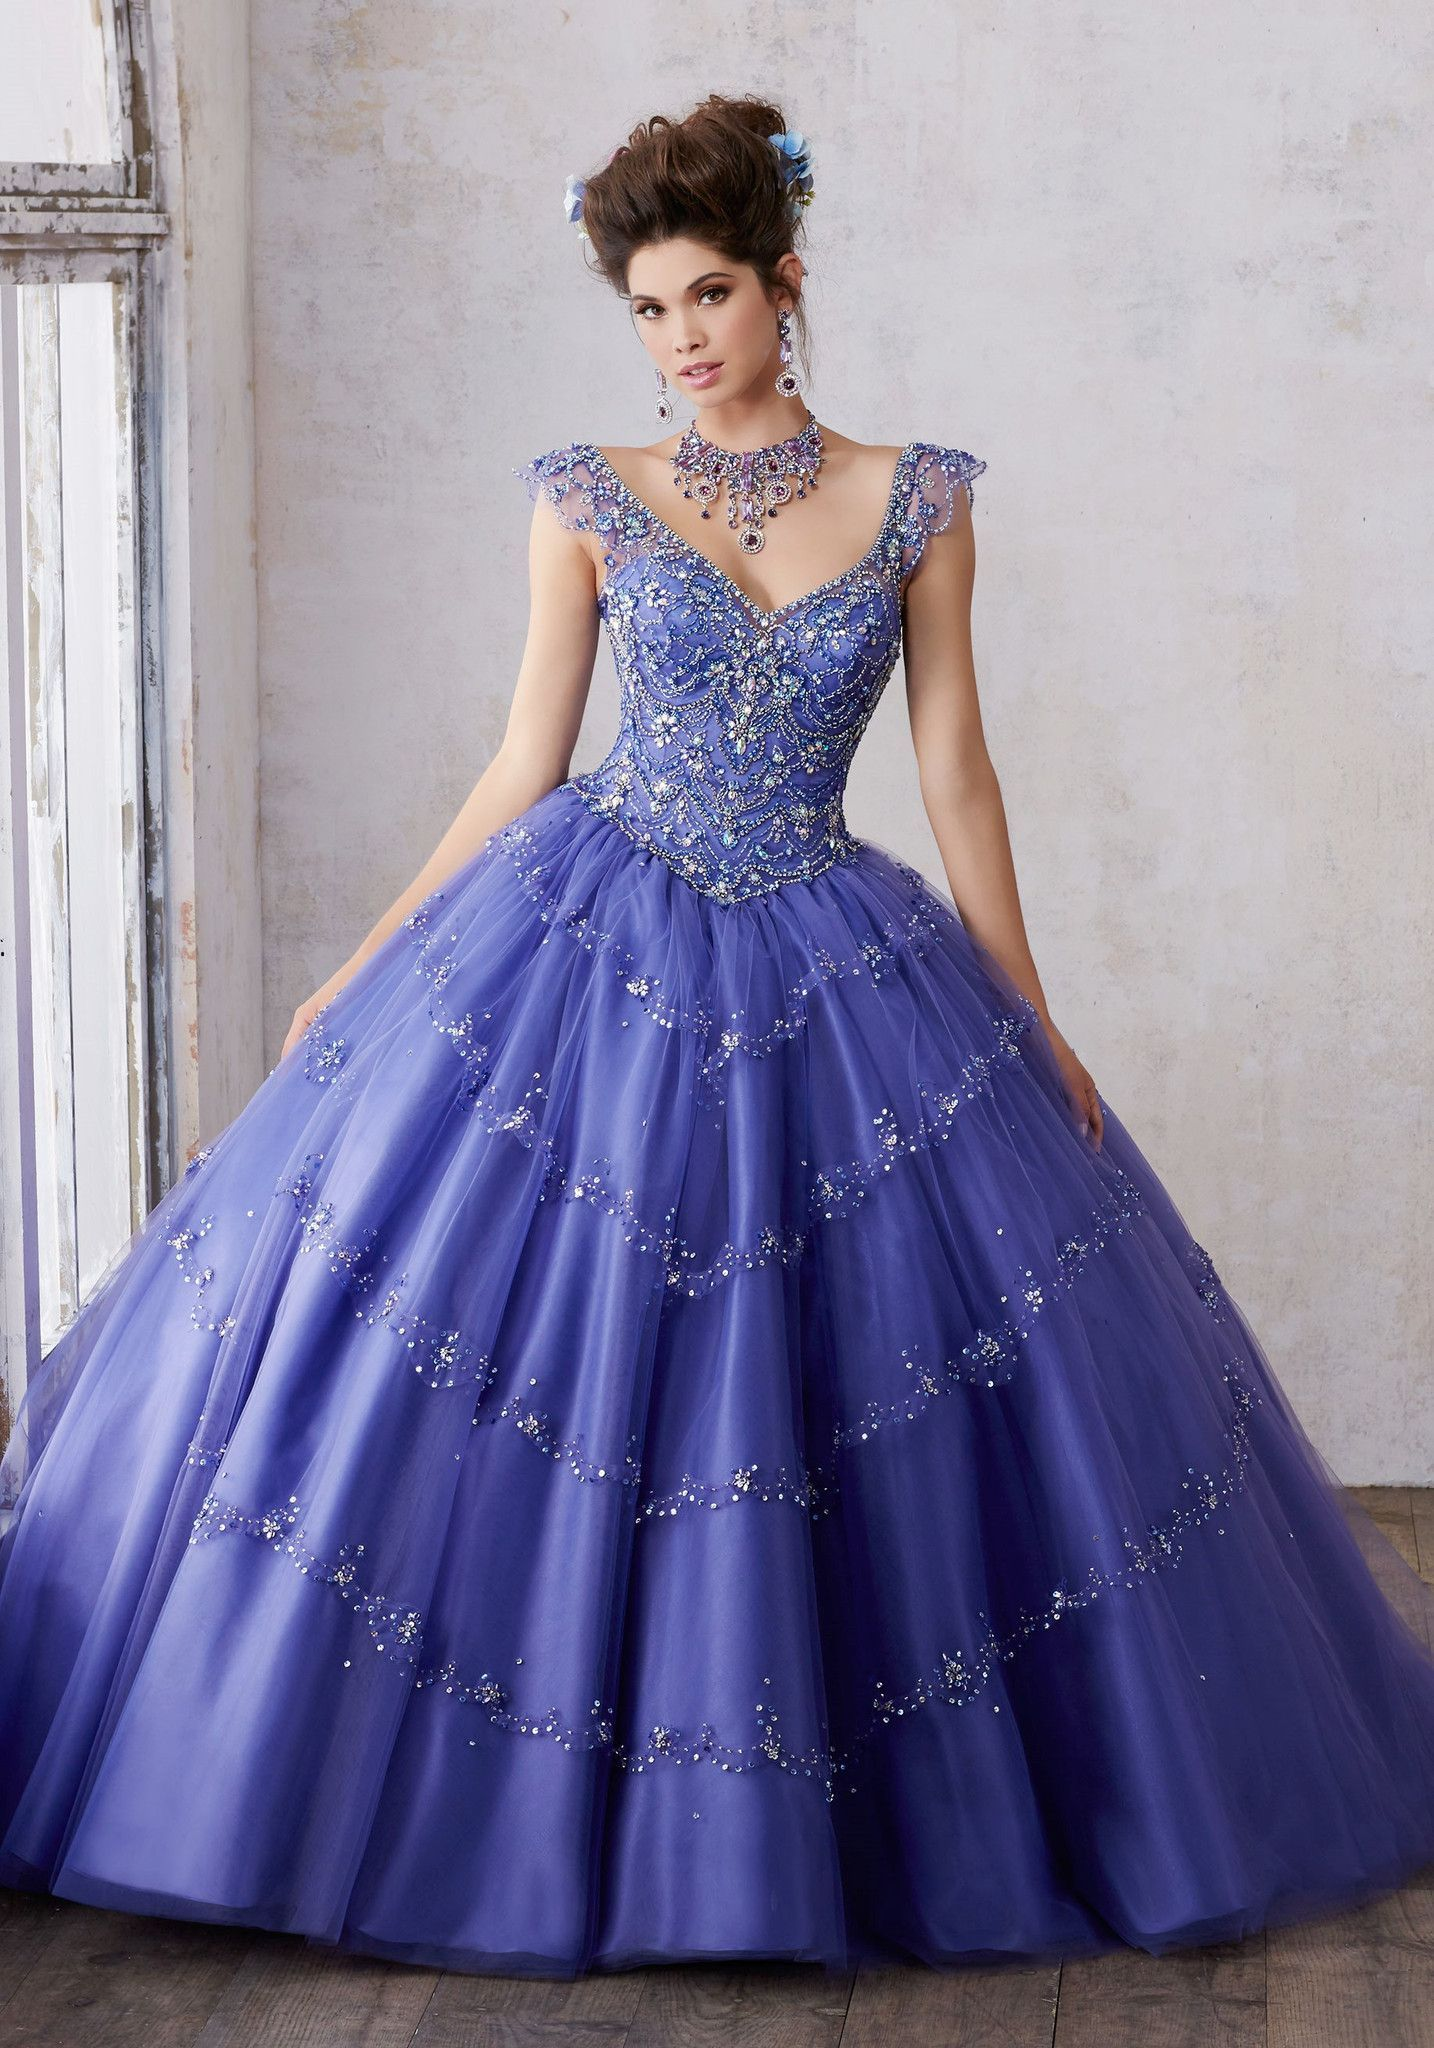 3ef06a53ed5 Mori Lee Quinceanera Dress Style 89136. Mori Lee Quinceanera Dress Style  89136 Vestidos De Moda